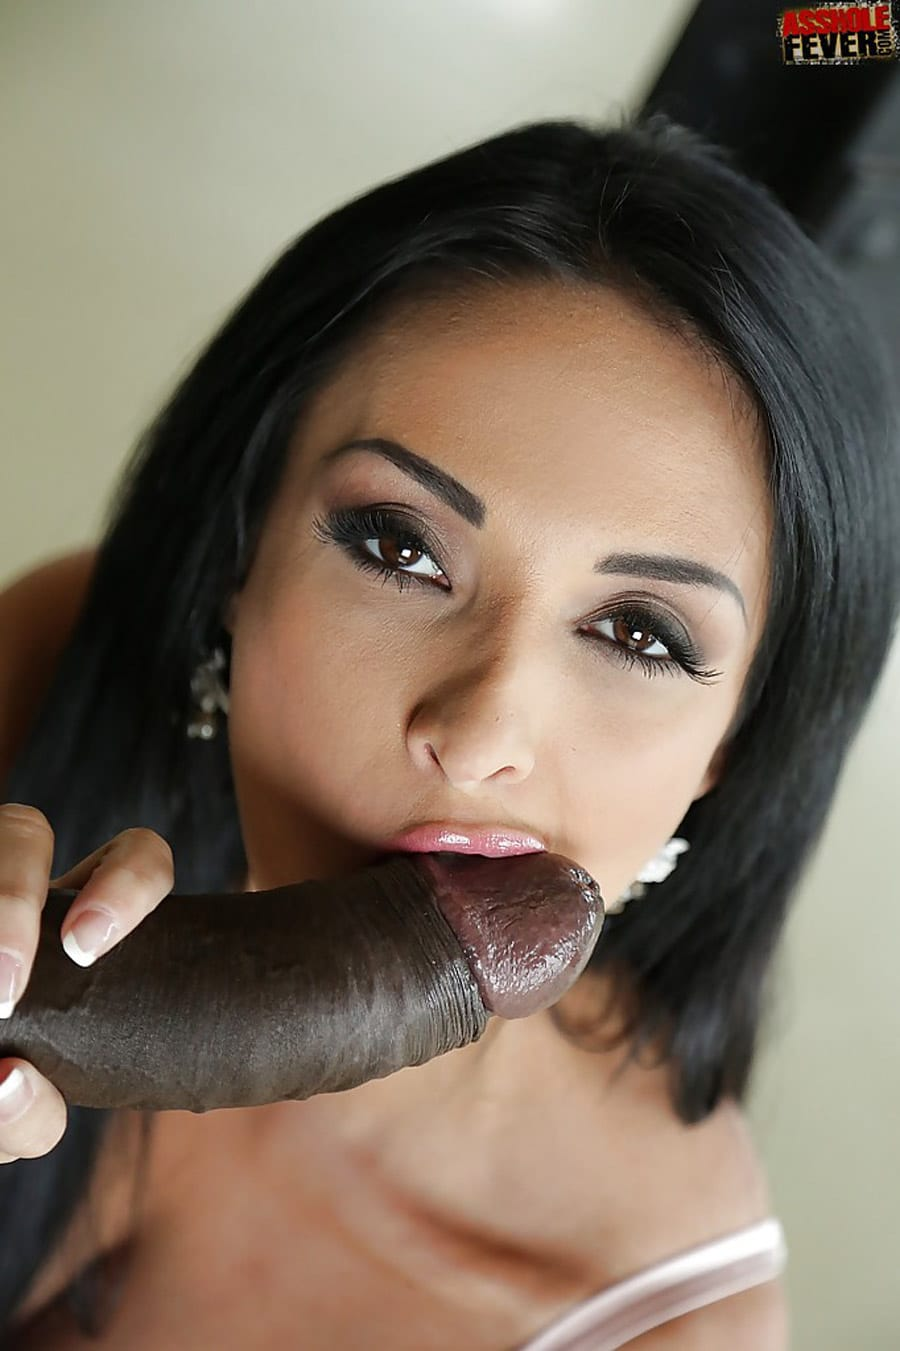 anissa-kate-interracial-anal-assholefever-8